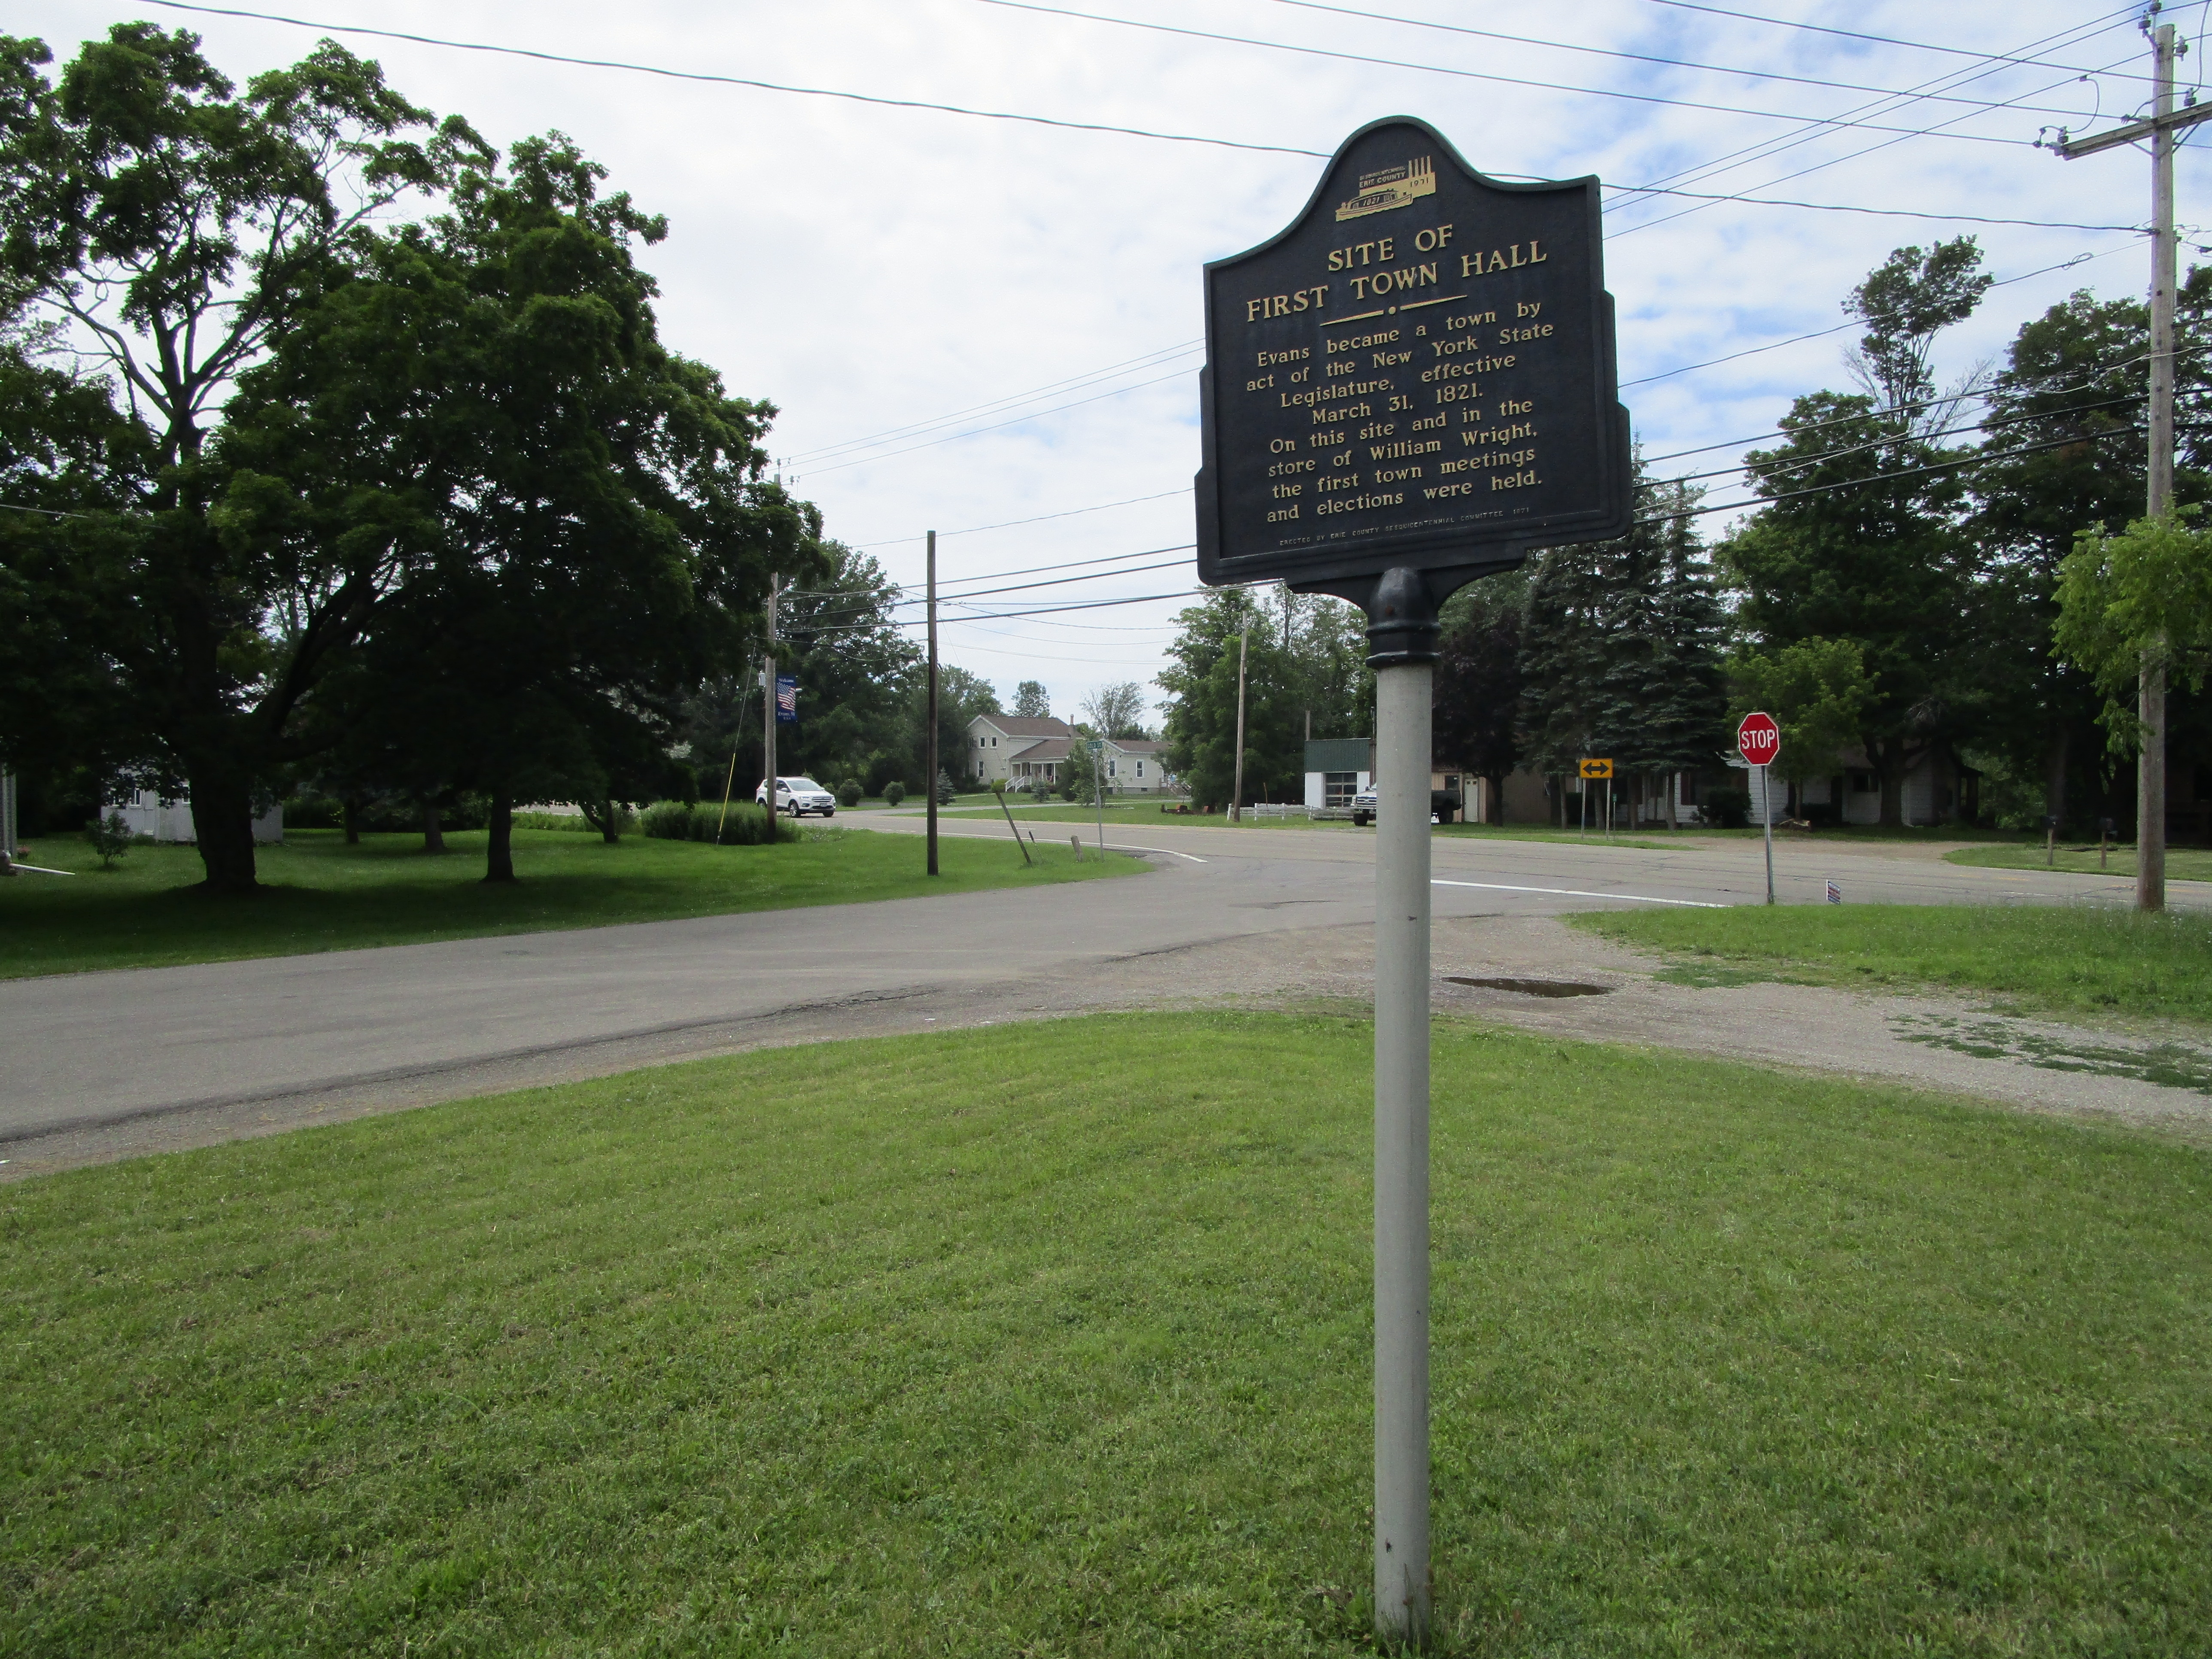 Site of First Town Hall Marker